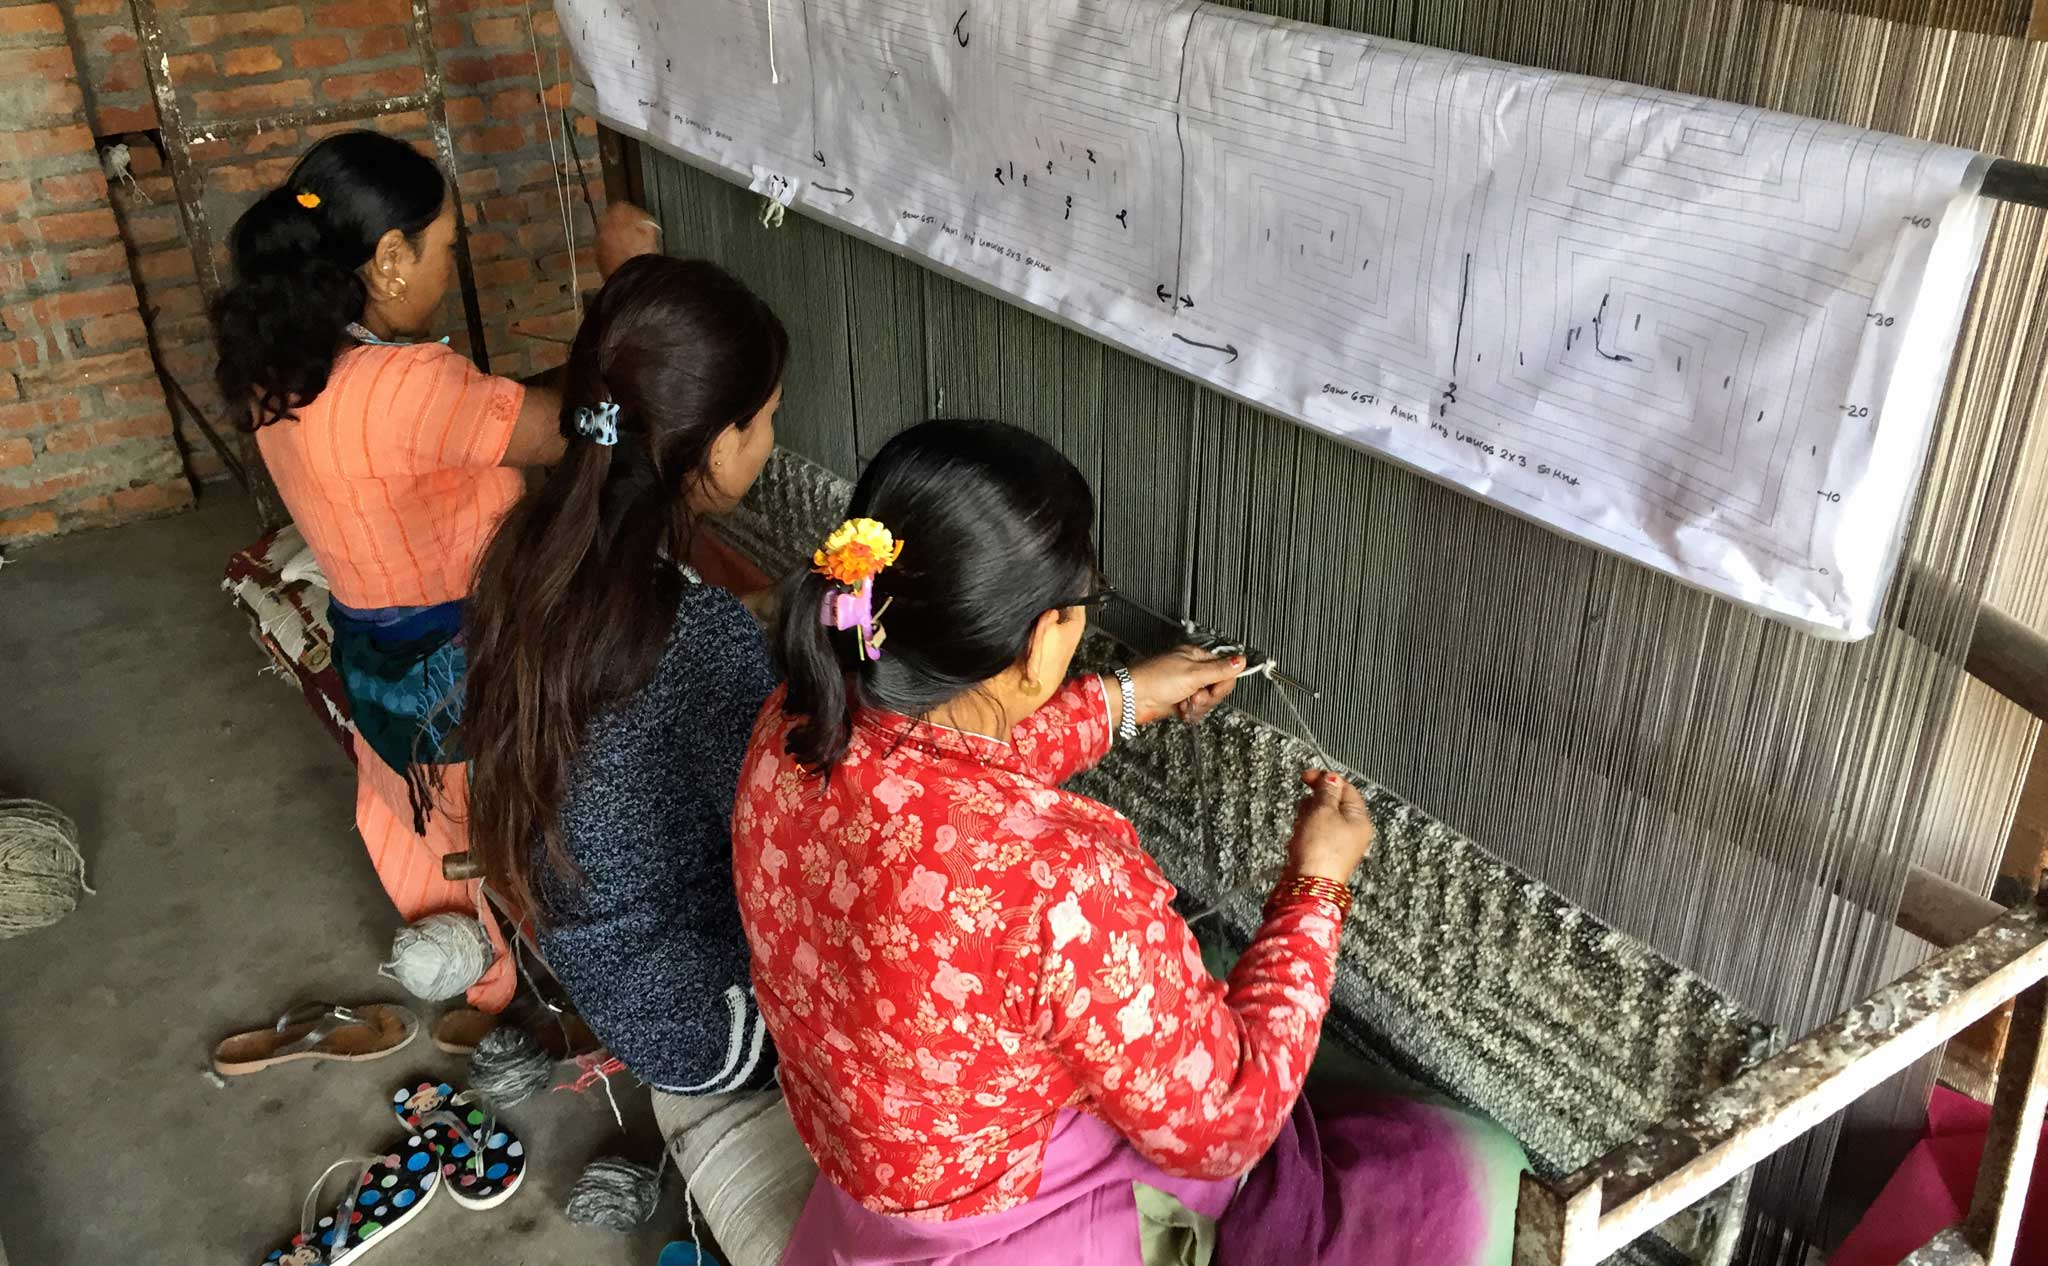 In addition to operating the most rigorous inspection regime to certify no illegal child or bonded labour was used in the manufacture of a handmade rug, GoodWeave now runs weaving training programs to teach job skills for those seeking a way out of poverty. | Image by The Ruggist.